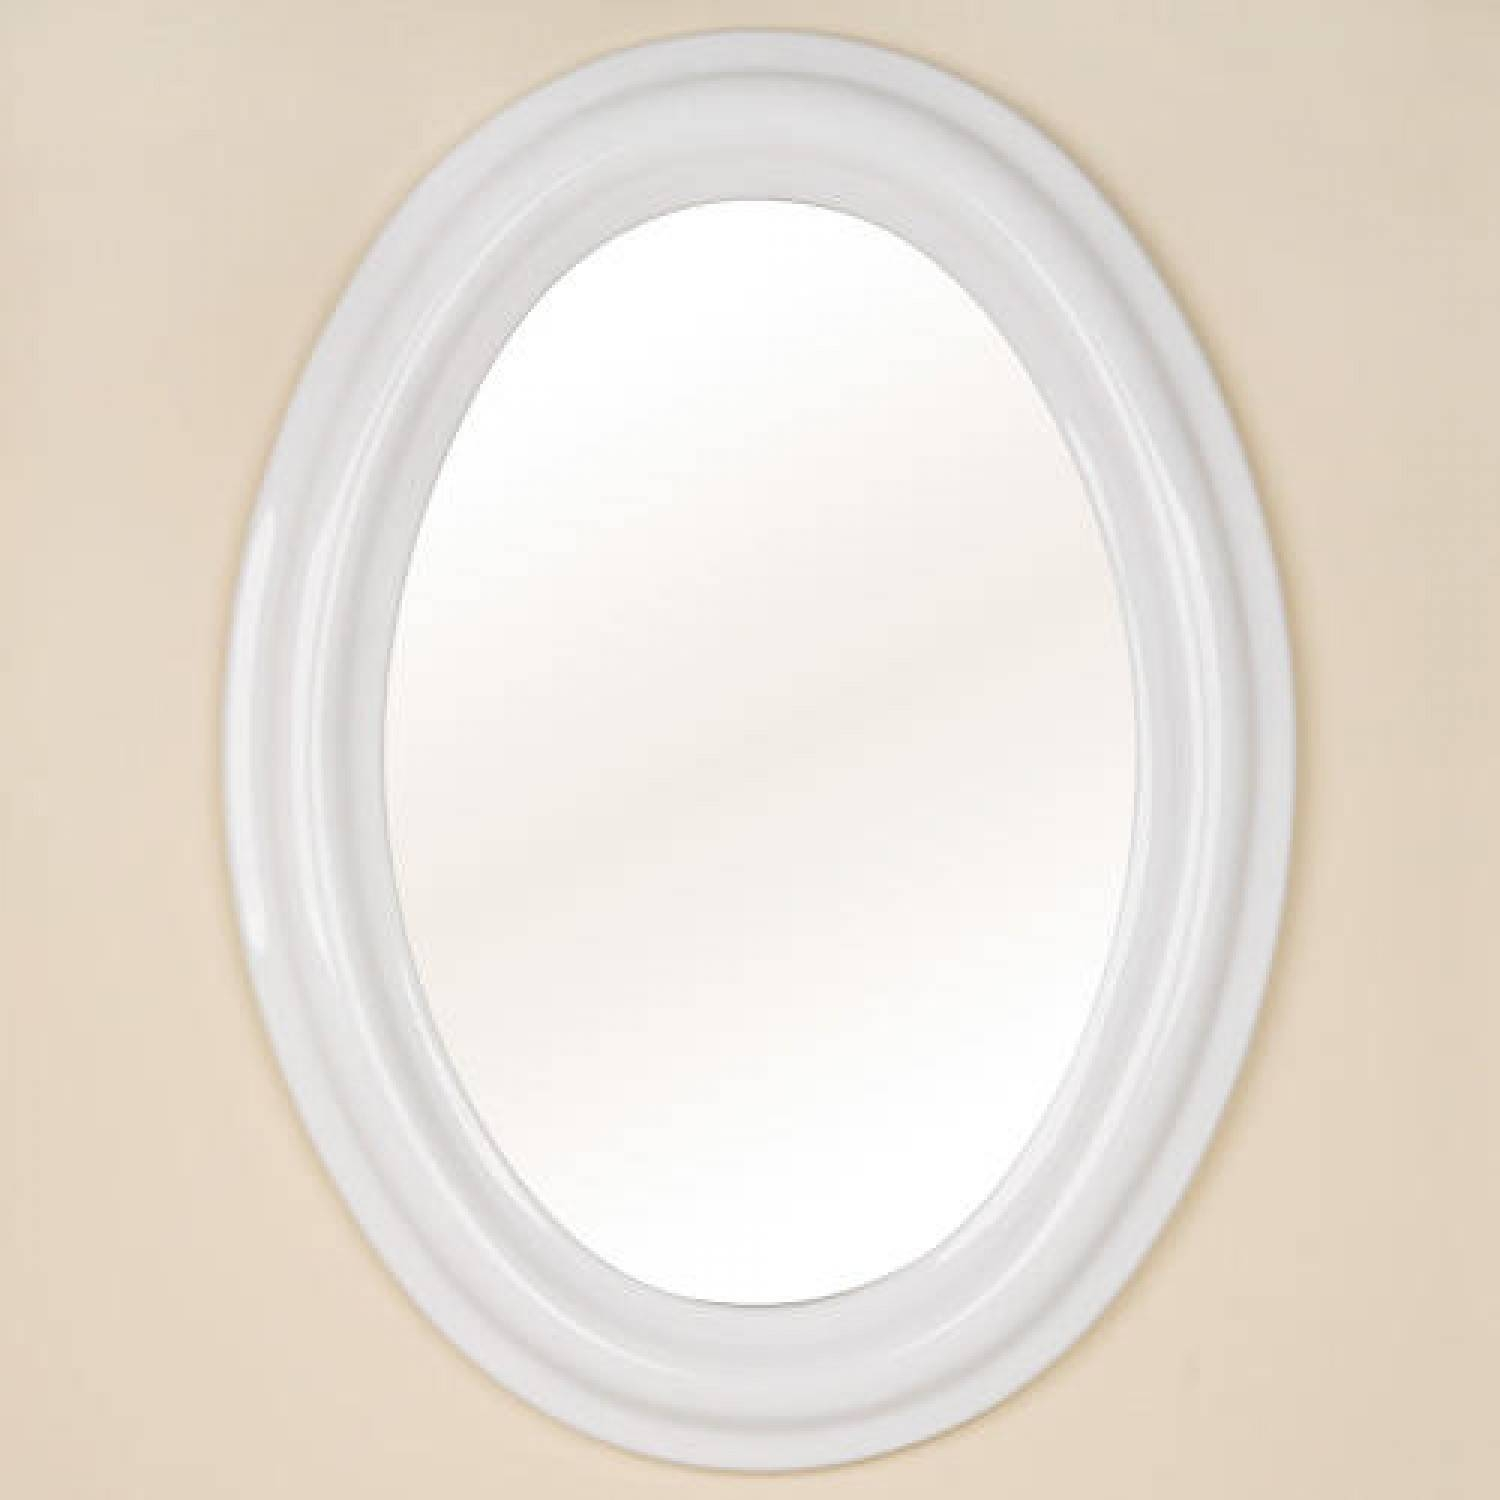 White Bathroom Mirror - Realie intended for Round White Mirrors (Image 14 of 15)